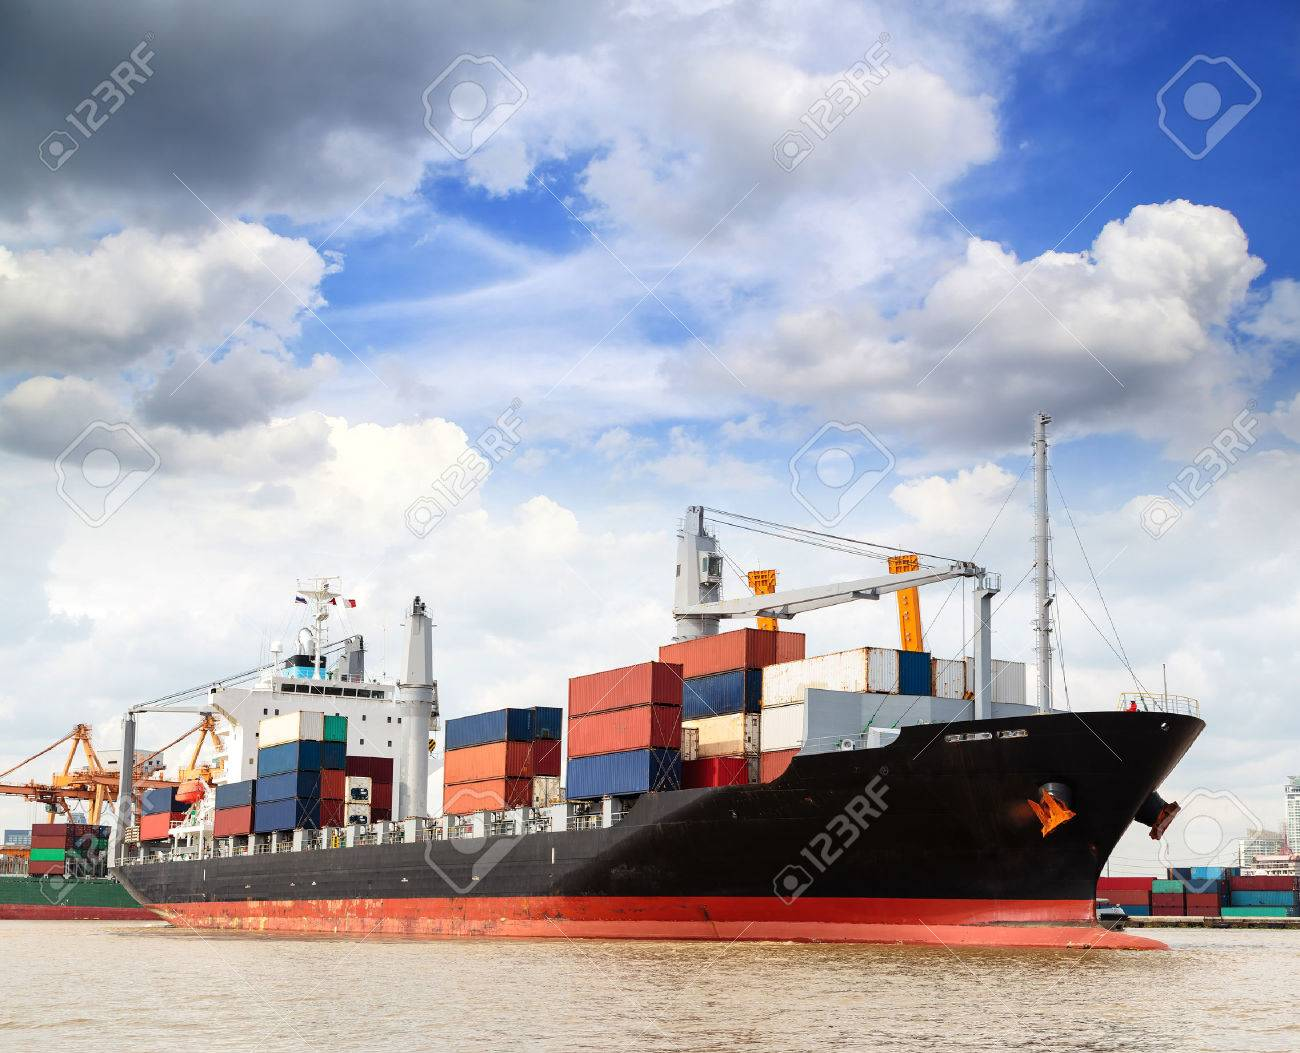 Cargo ship at the port outgoing with blue sky - 22874015